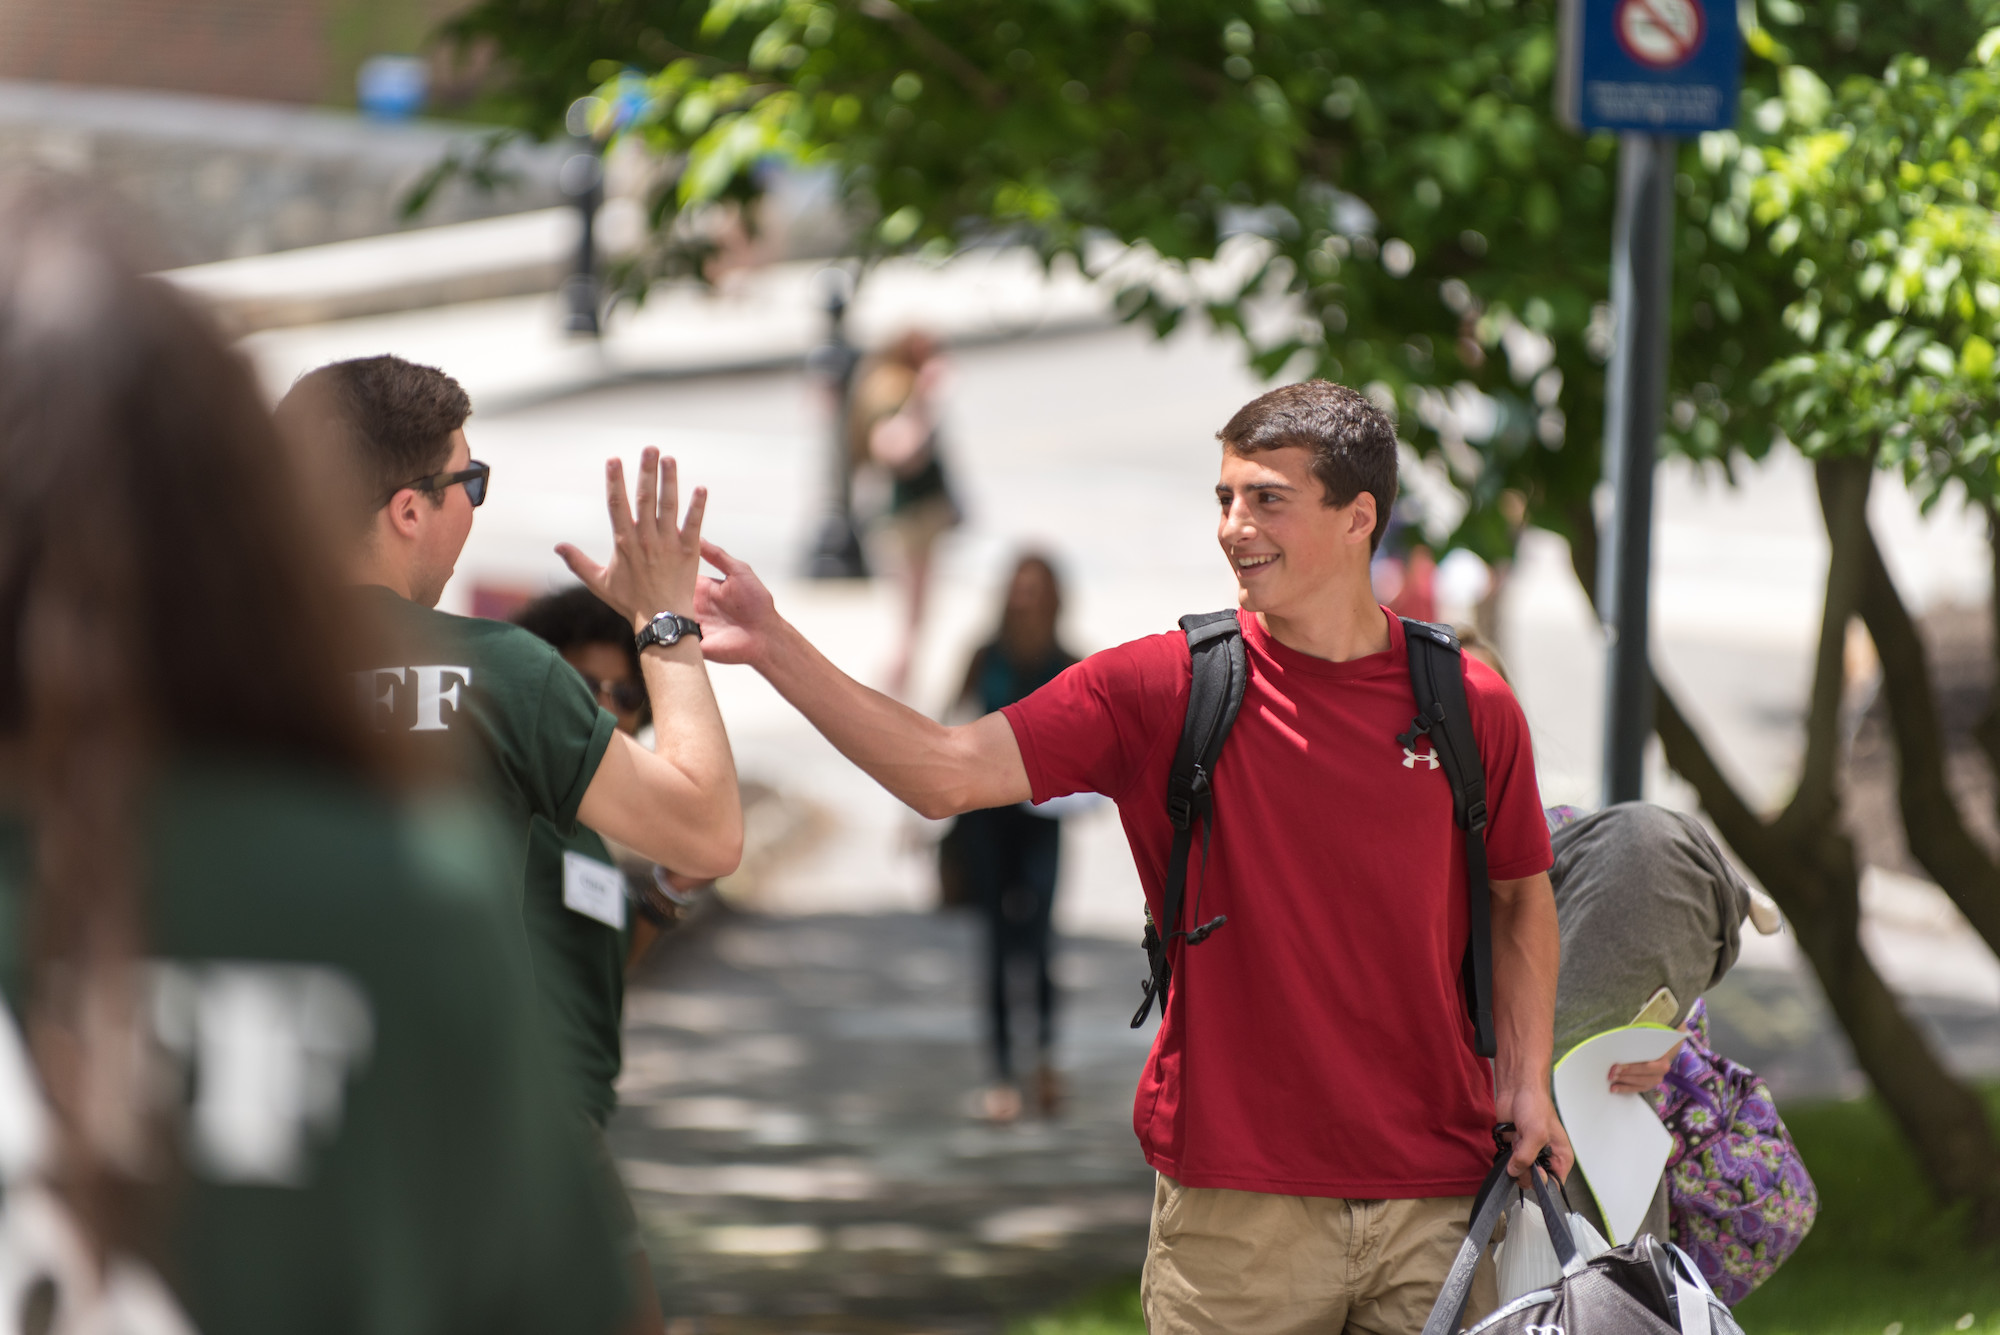 Students high-five on move-in day at UNH.